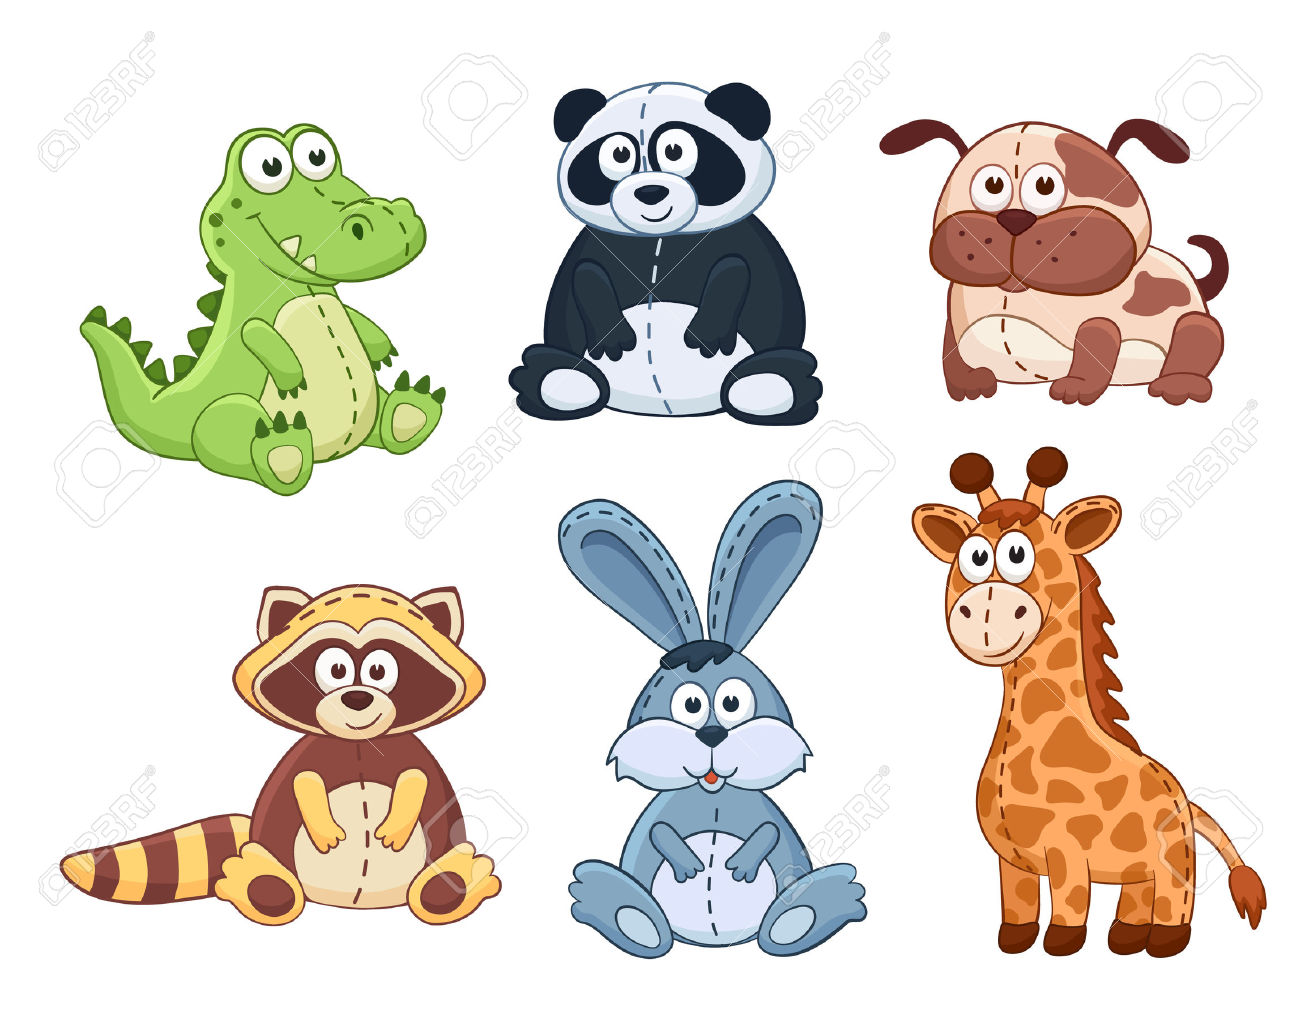 Cute Cartoon Animals Isolated On White Background. Stuffed Toys.